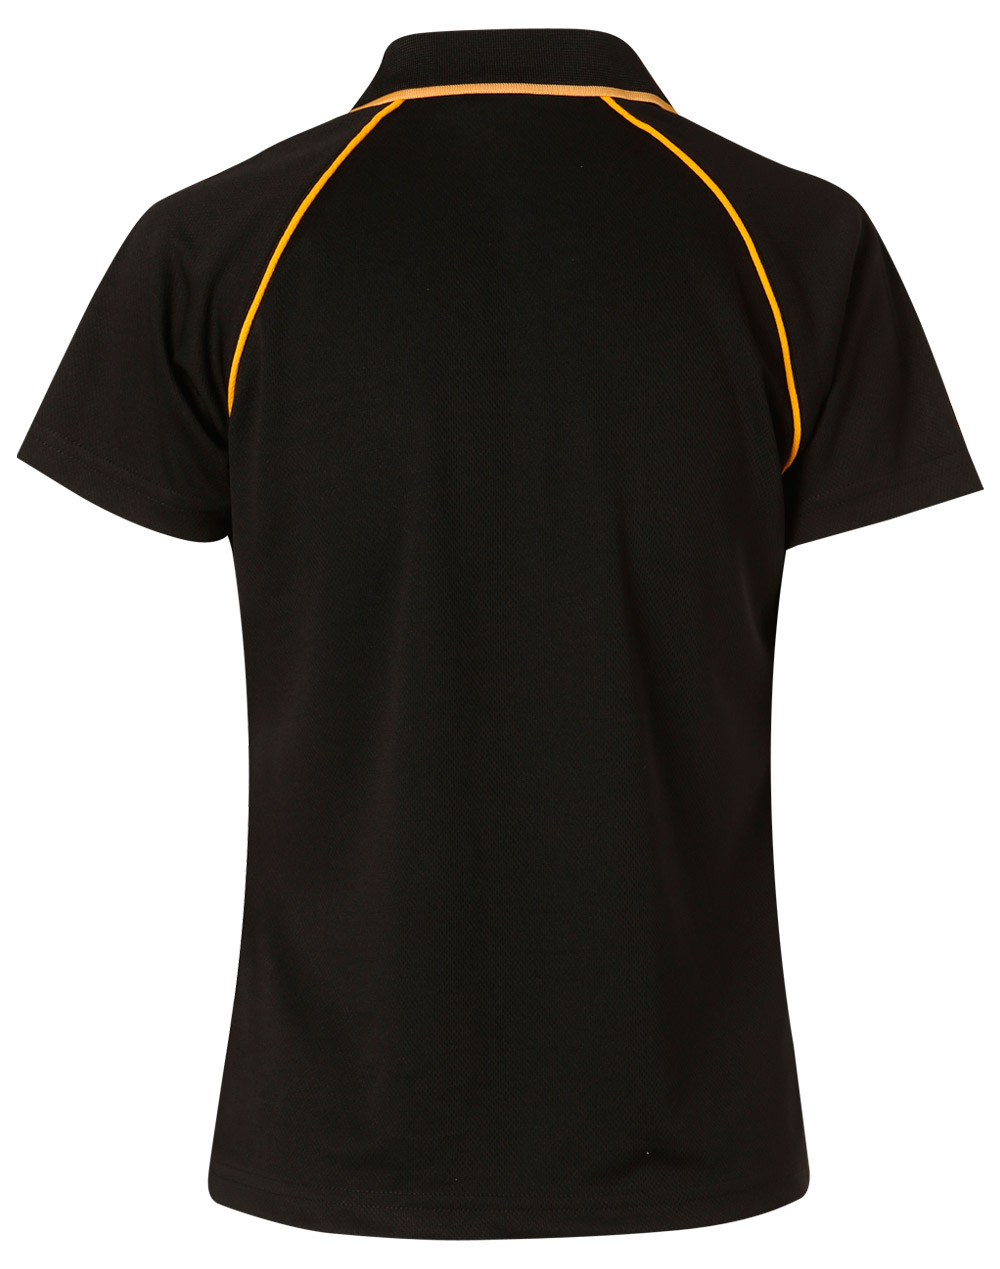 https://s3-ap-southeast-1.amazonaws.com/ws-imgs/POLOSHIRTS/PS19_Black.Gold_Back.jpg